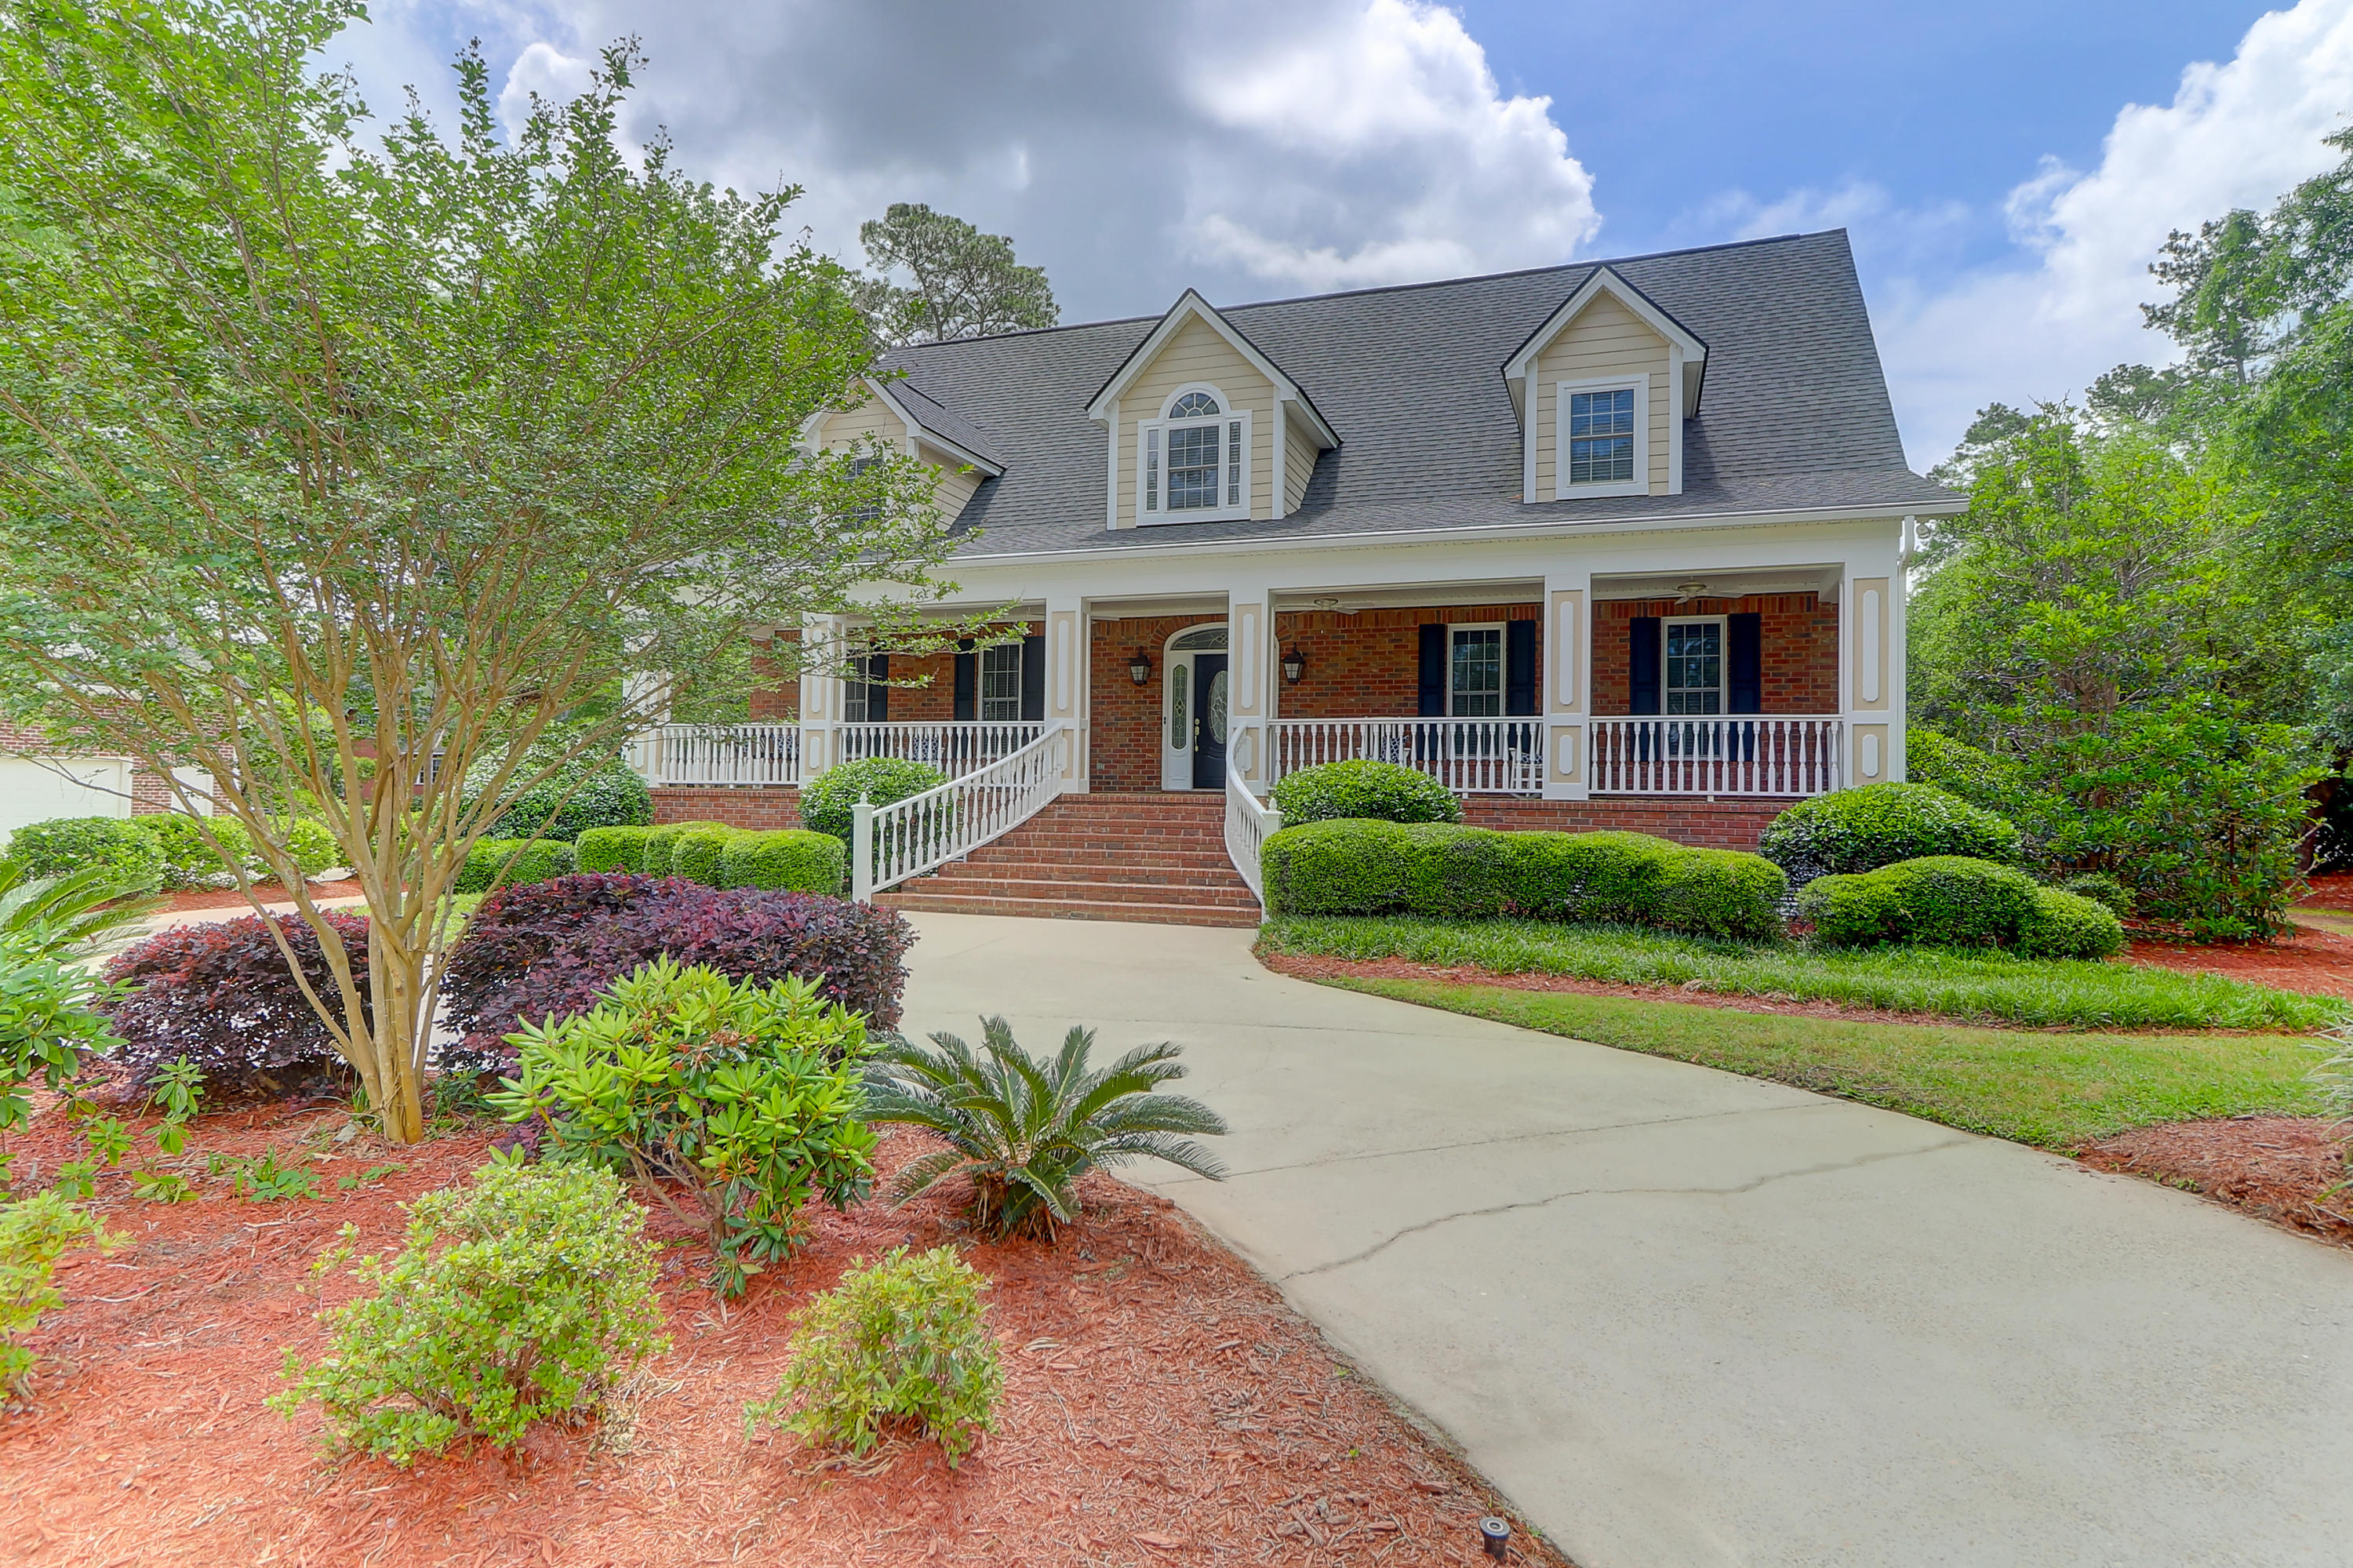 Coosaw Creek Country Club Homes For Sale - 8700 Fairway Woods, North Charleston, SC - 53